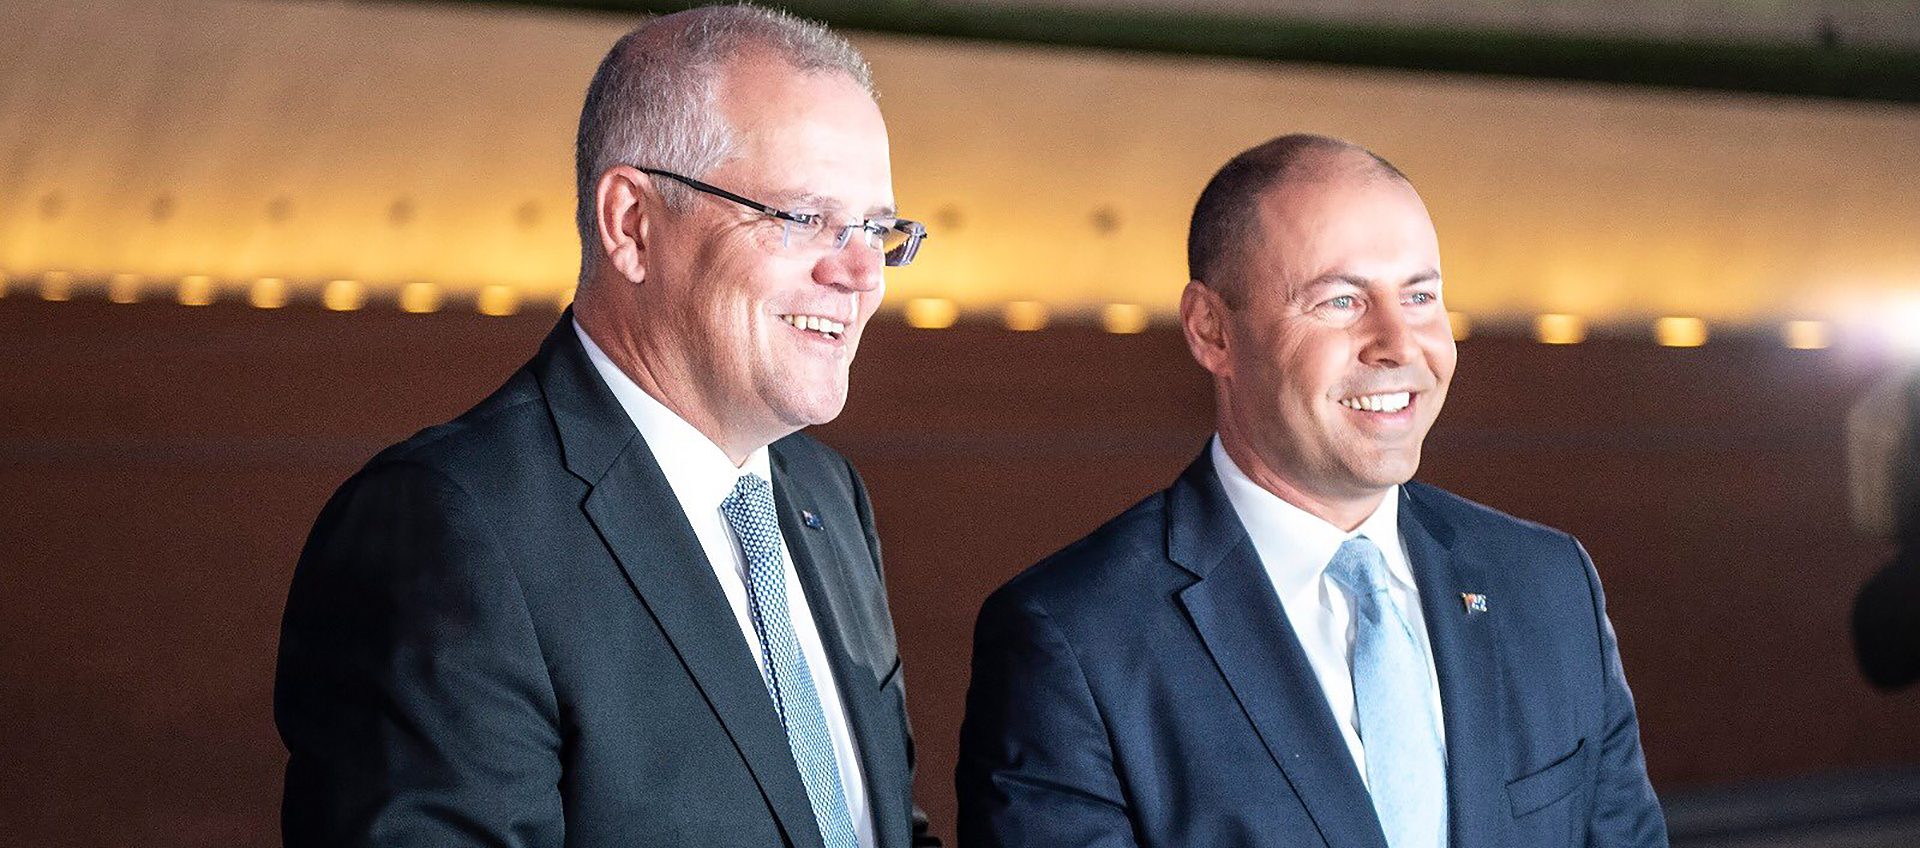 Scott Morrison and Josh Frydenberg announce the 2019 Federal Budget.